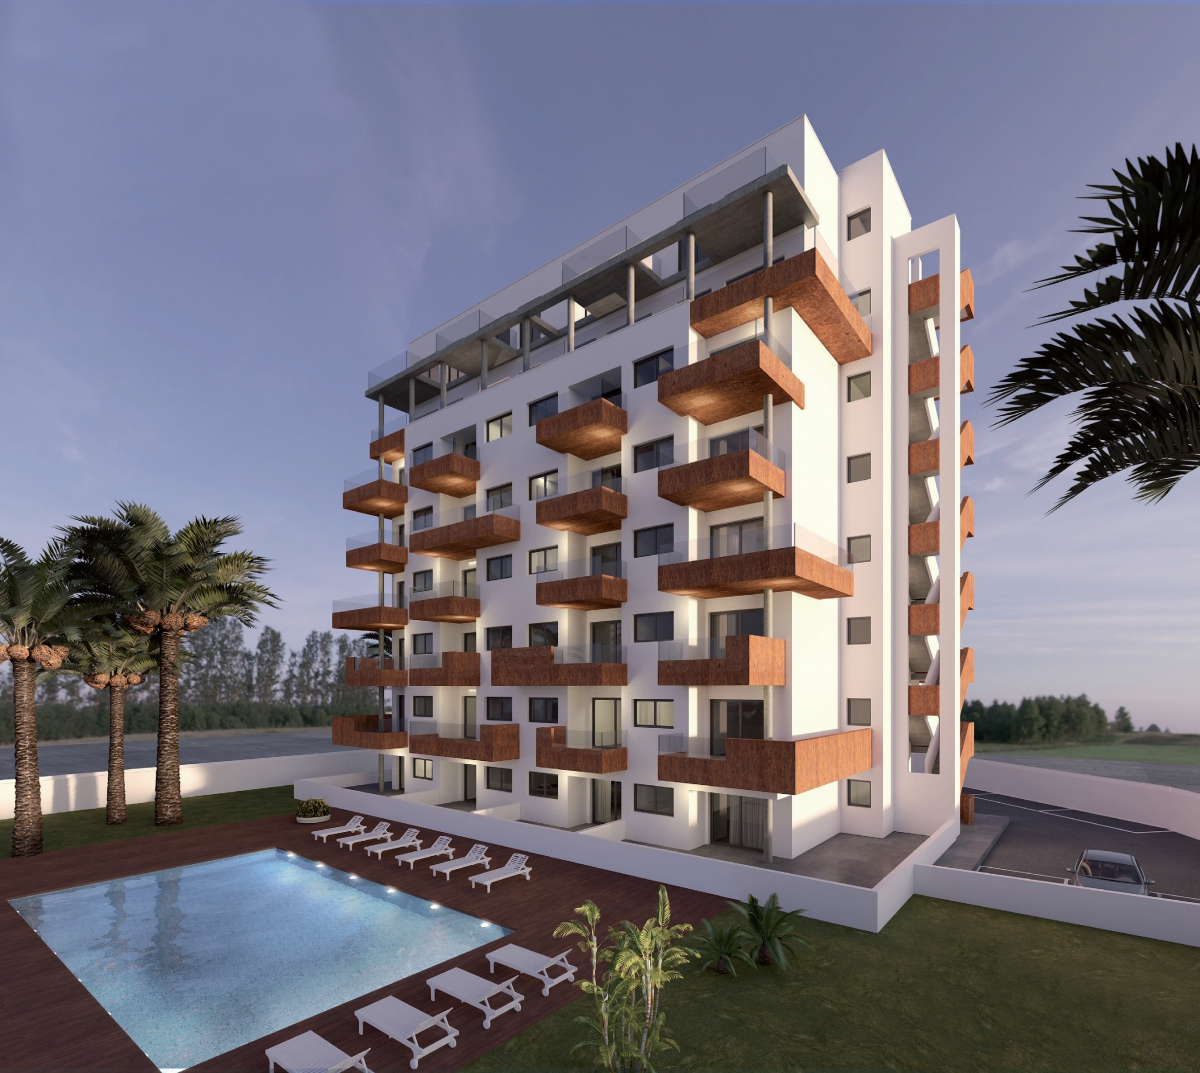 Costa Blanca Immobilien in Nähe von Golf Resorts - Attraktive Apartments Dunas Guardamar, Costa  Blanca